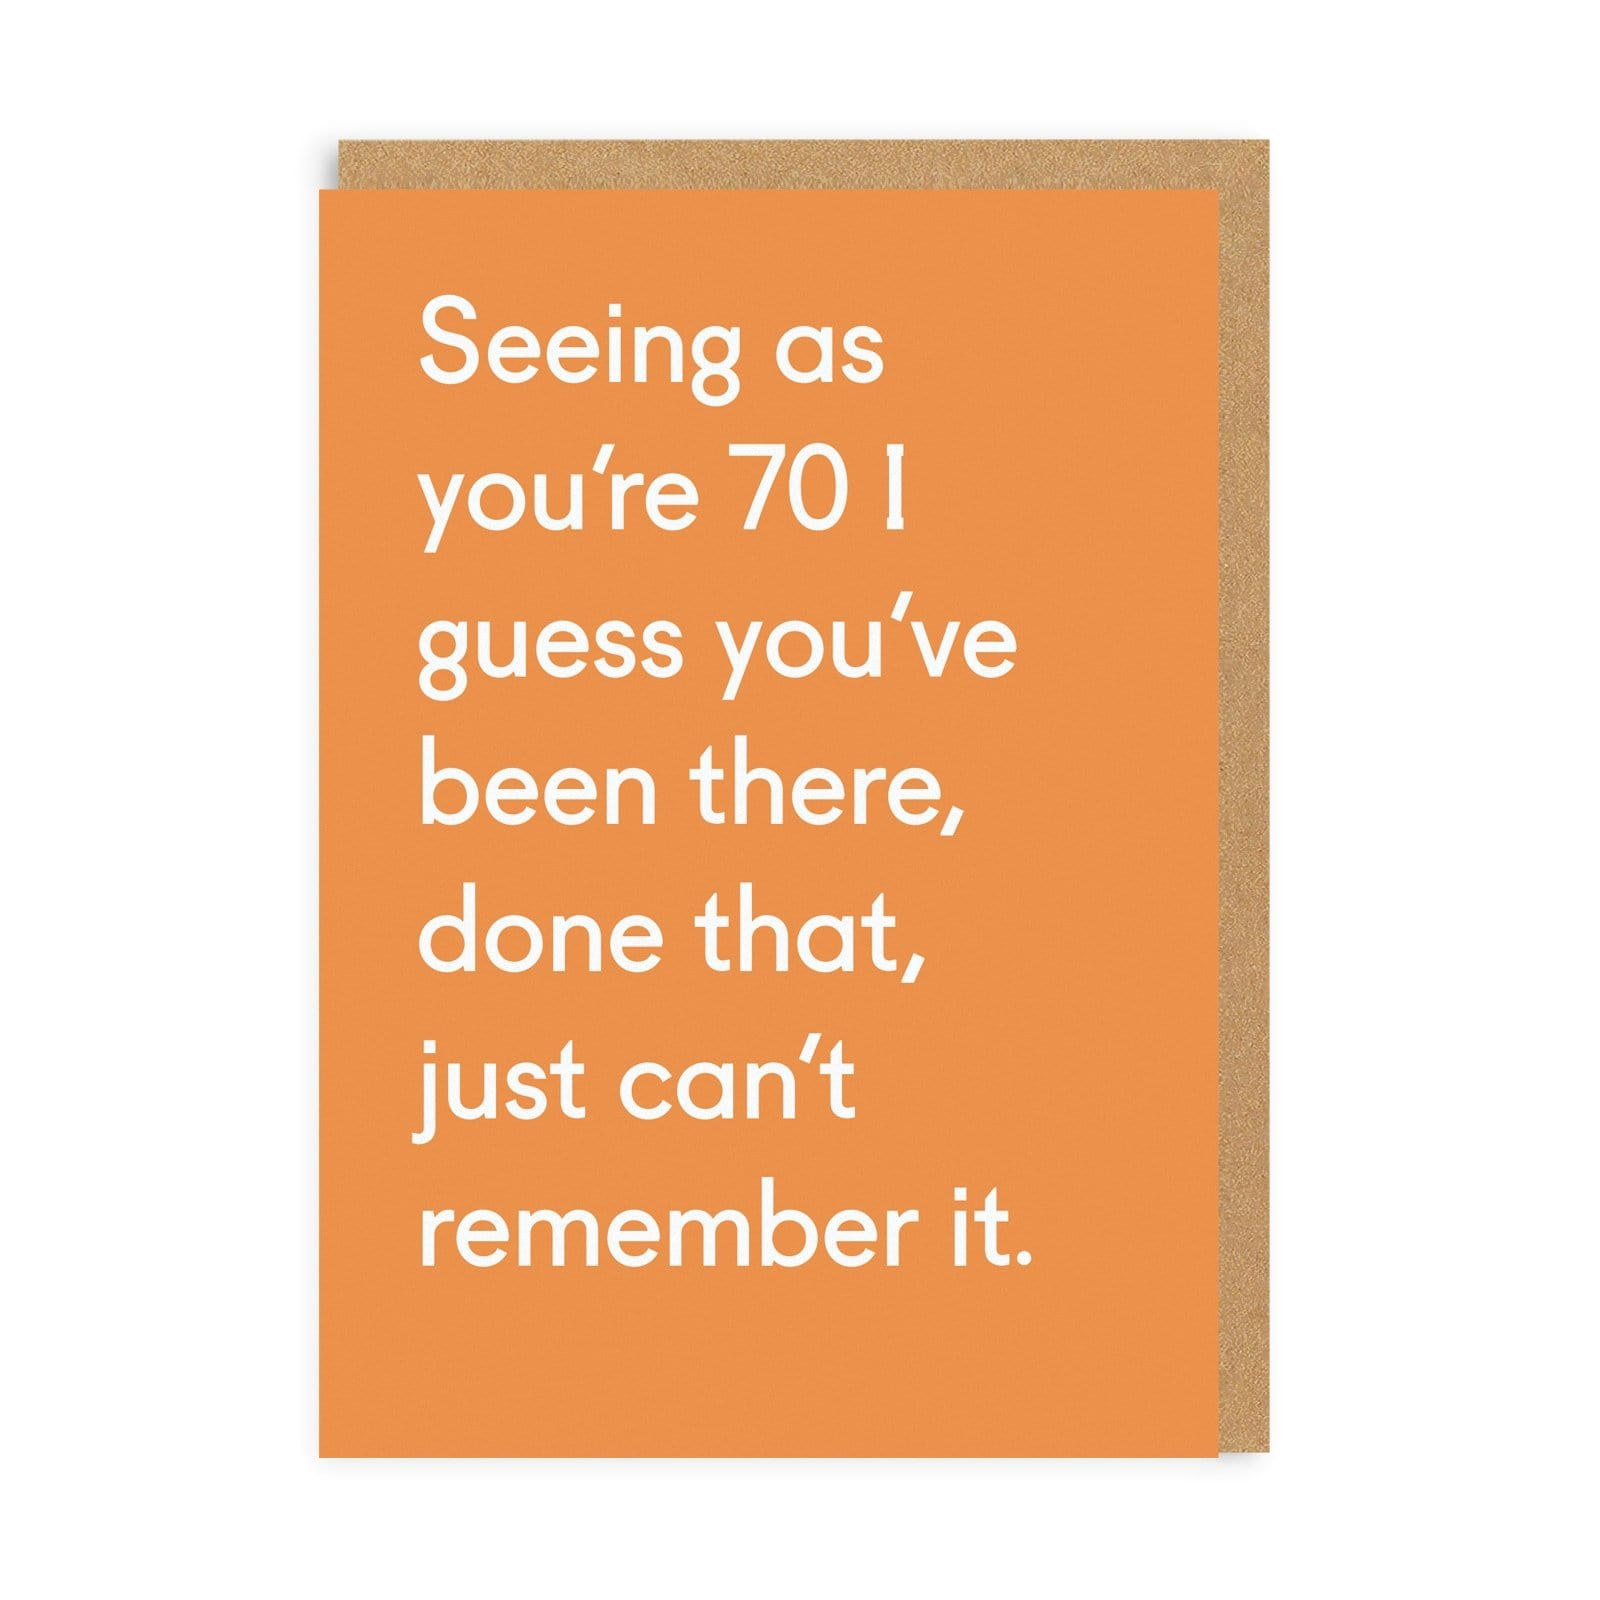 Orange greeting card with white text writing for 70th Birthday